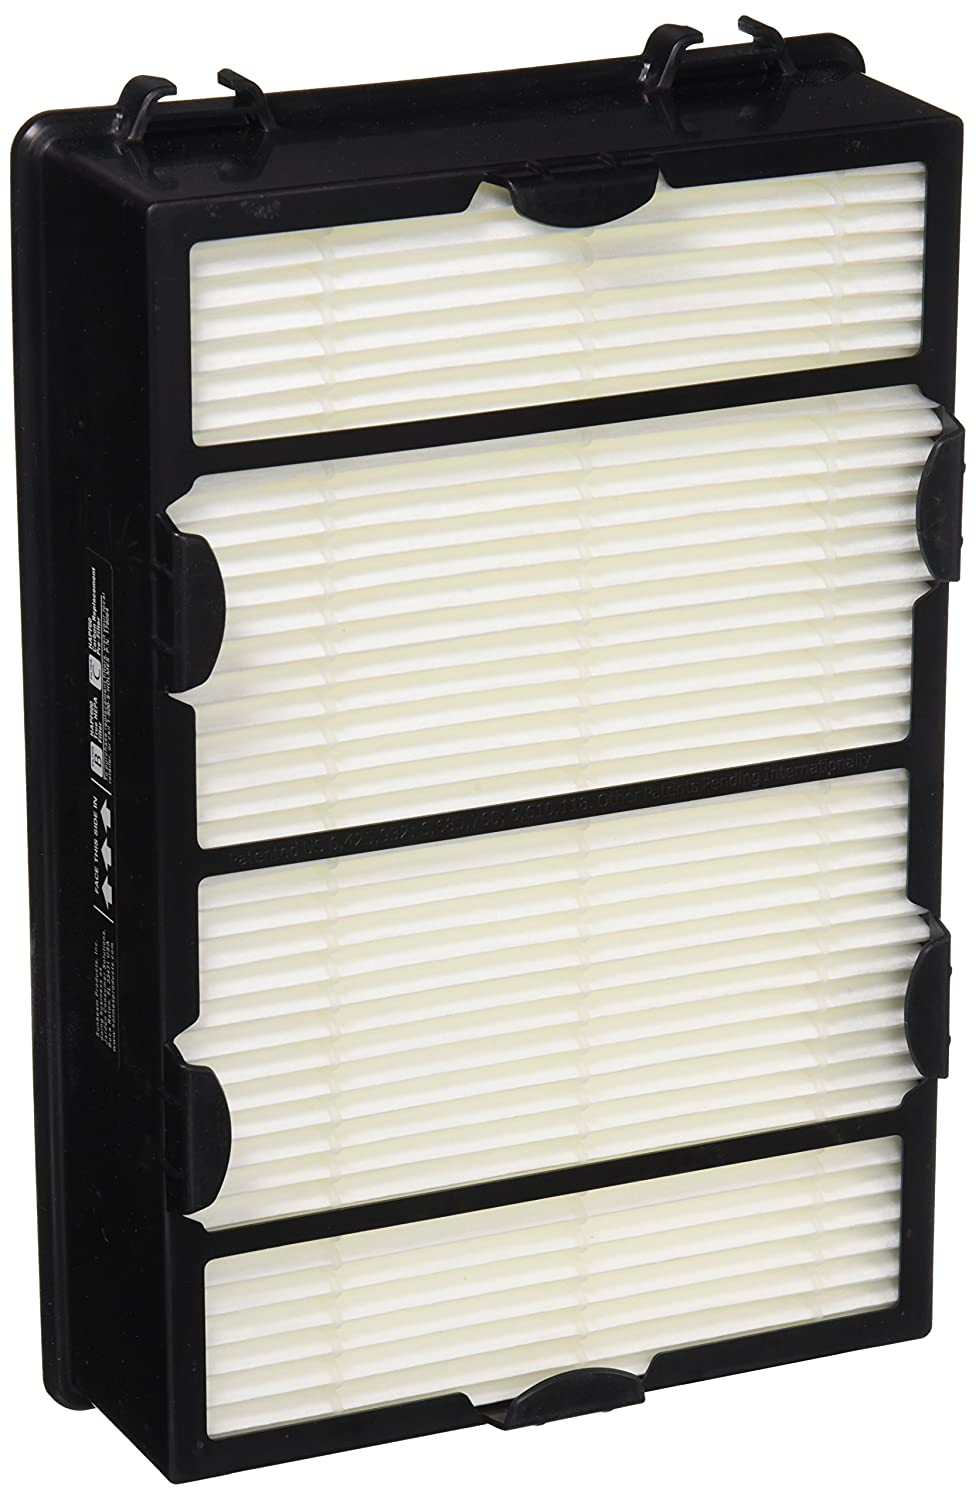 Holmes Group True HEPA Filter with Enhanced Mold Fighting Power, 2-Pack, White, 2 Count - HAPF600DM-U2